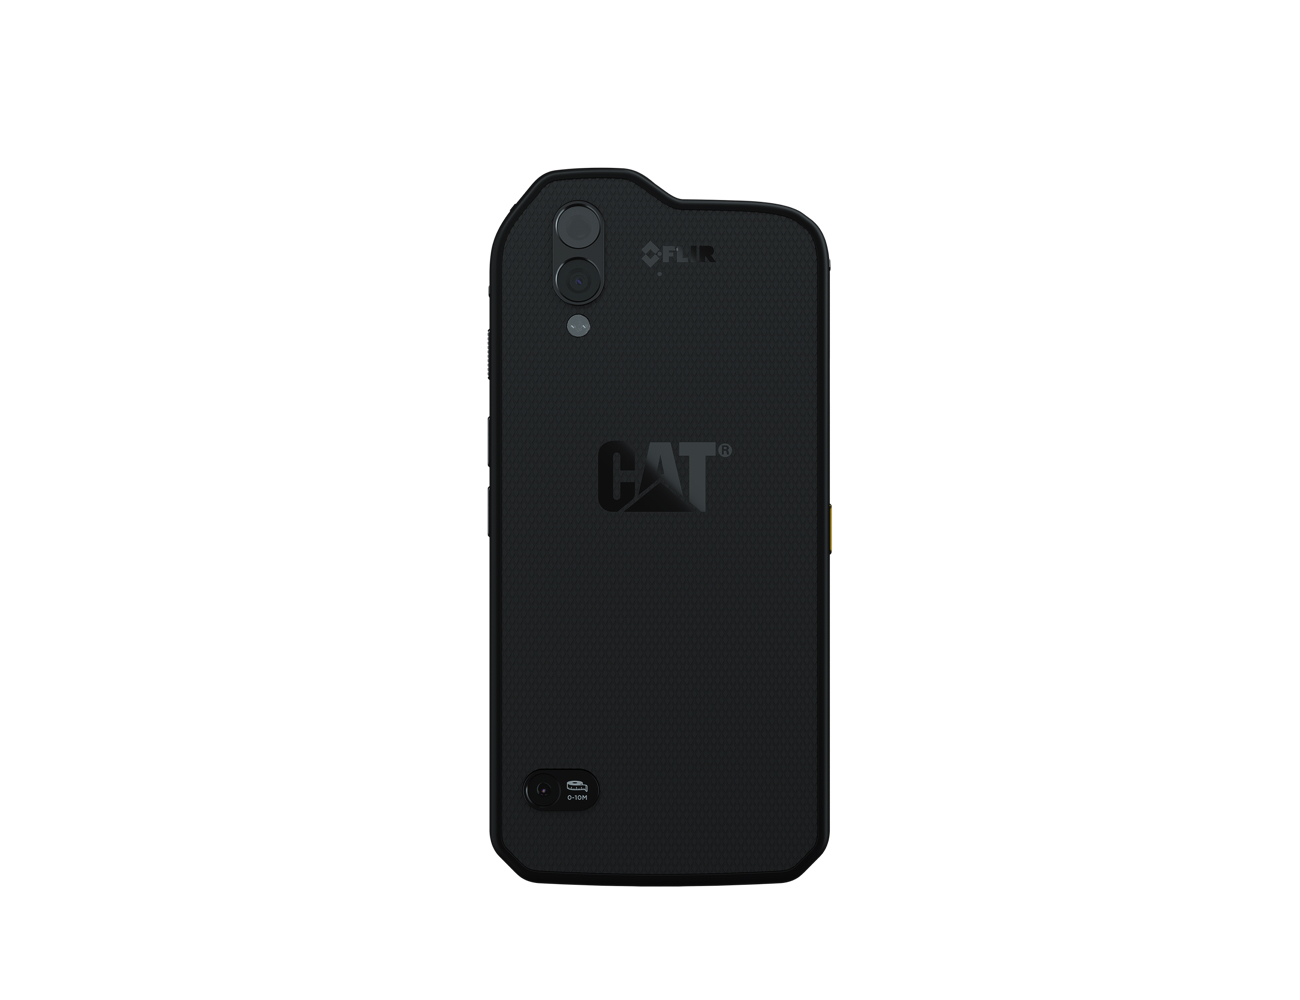 Cat S61 Multi-tool Android Smartphone